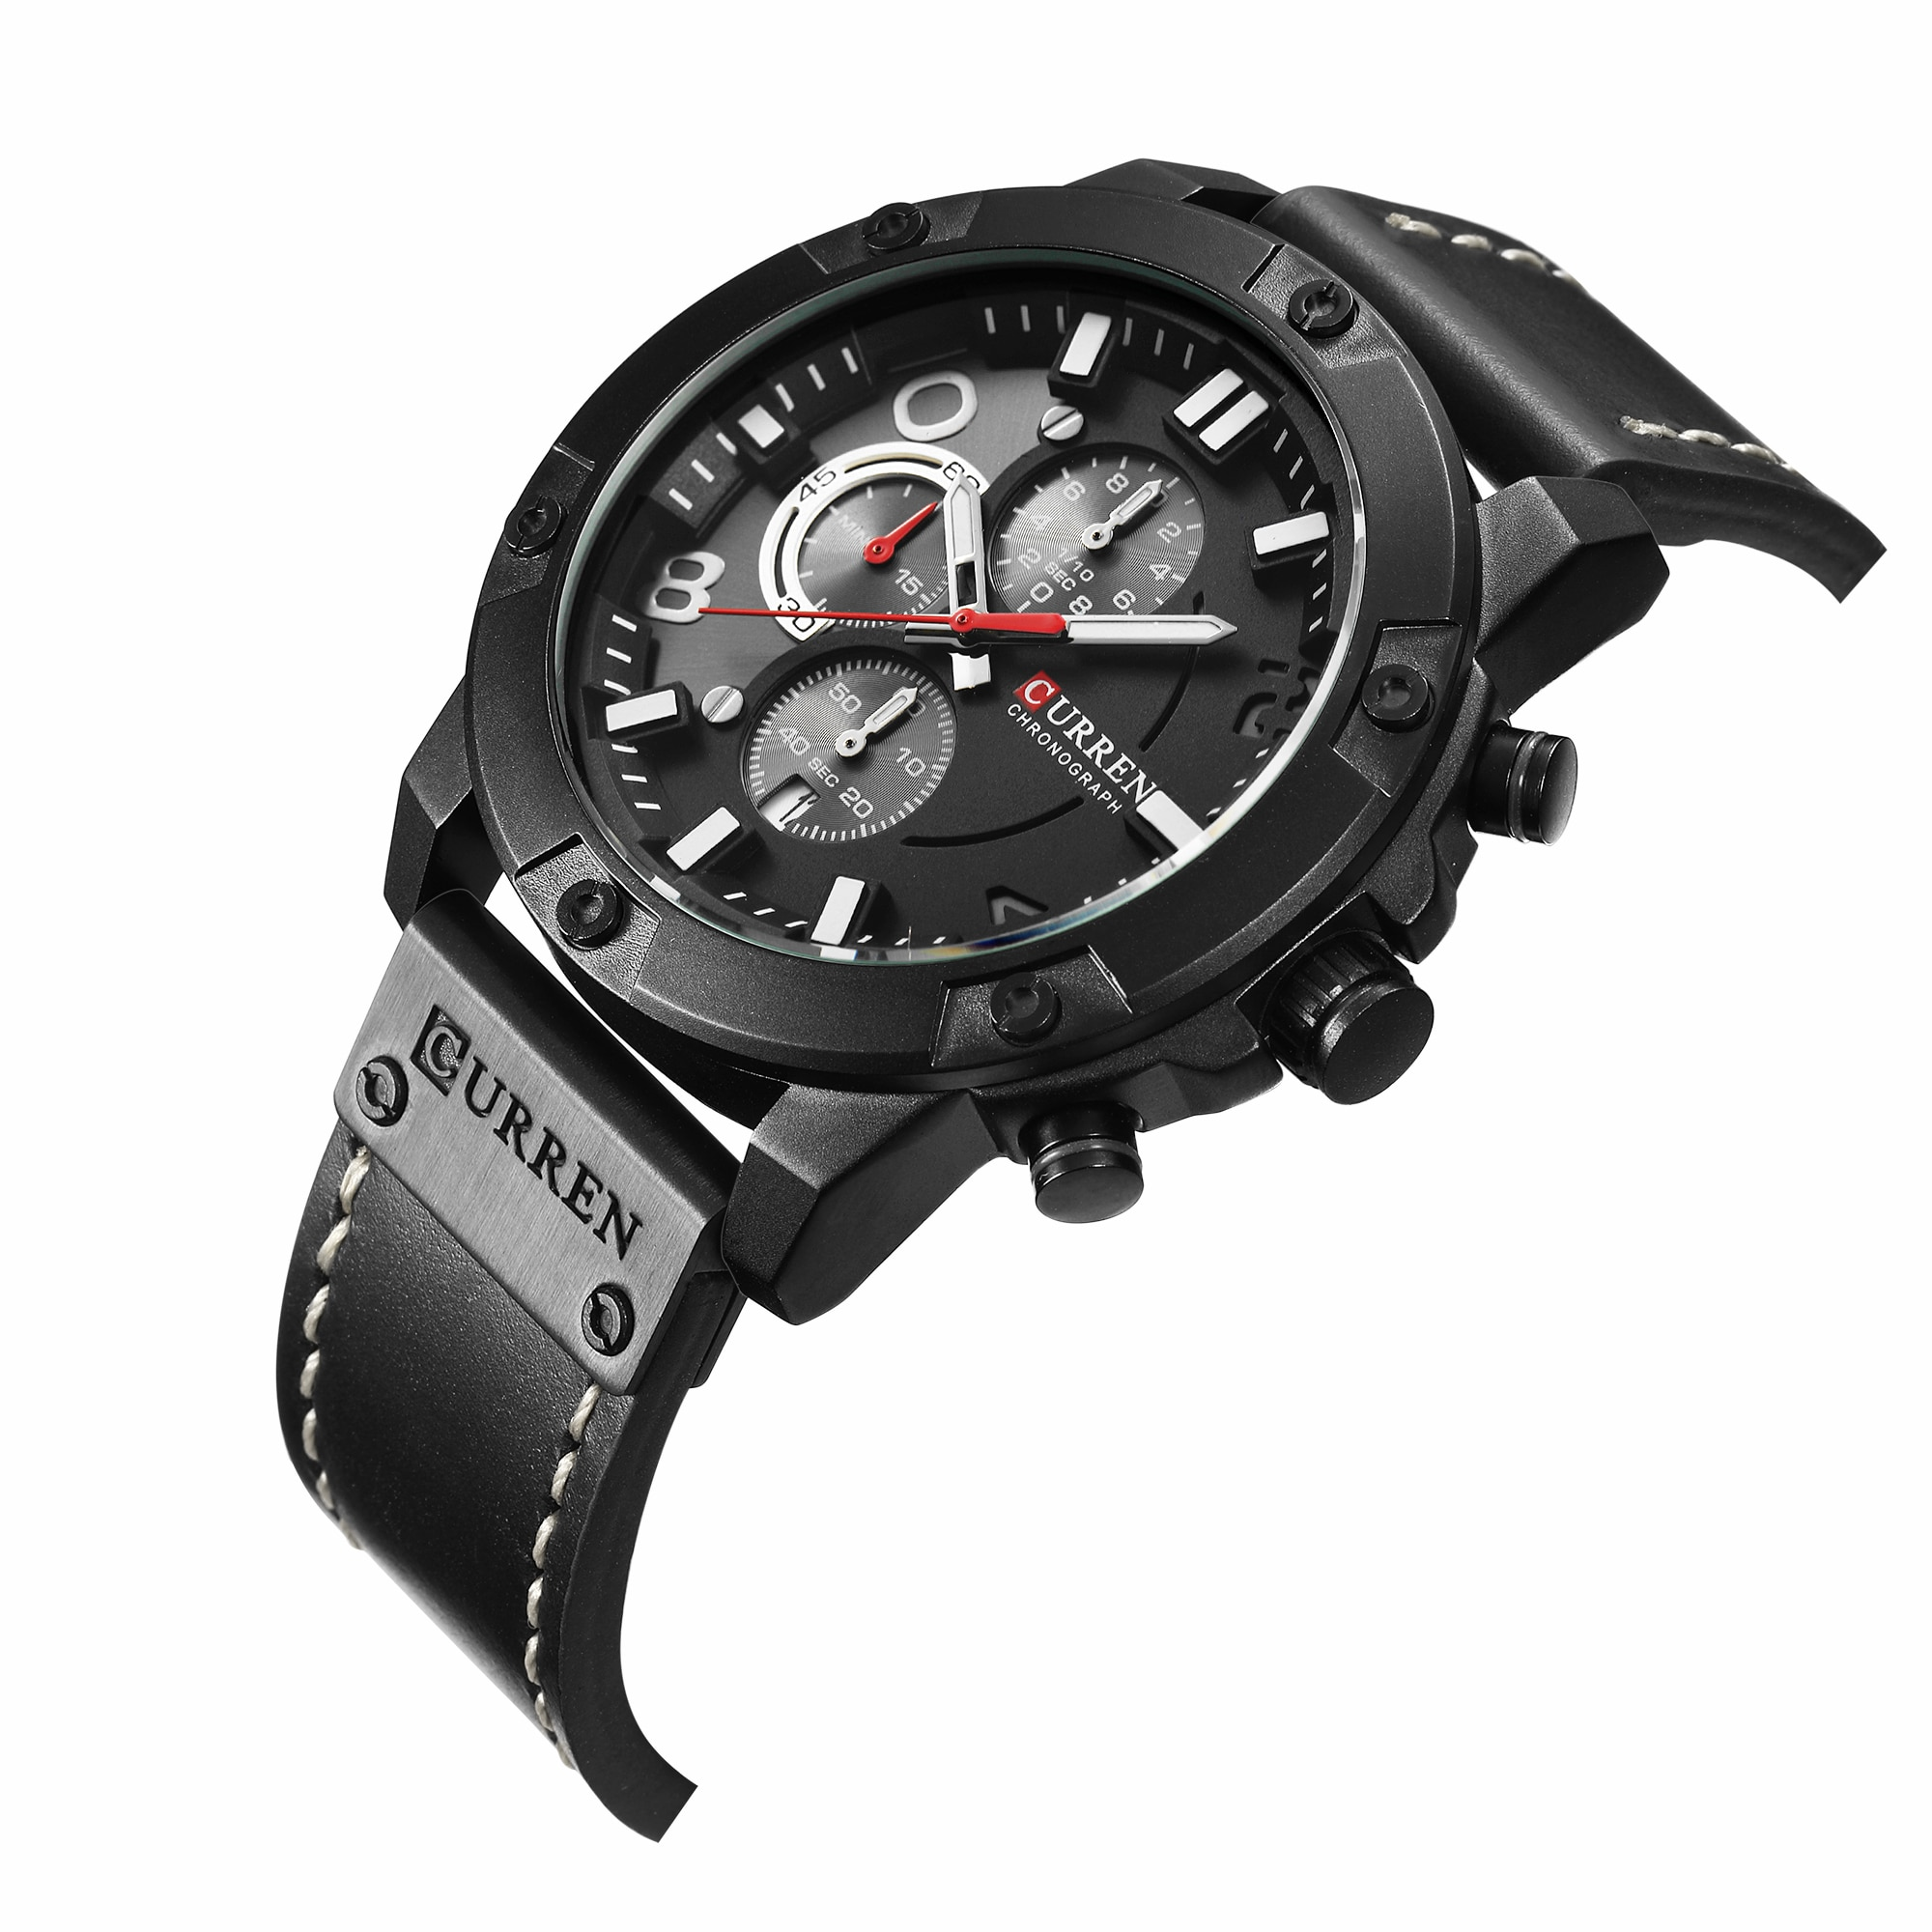 CURREN Sport Watch Leather Strap New Arrival Simple Style Male Military Watches Quartz Waterproof Chronograph Top Brand Clock new men watch ochstin top brand sport wrist hand quartz watch waterproof chronograph quartz black male date leather strap clock